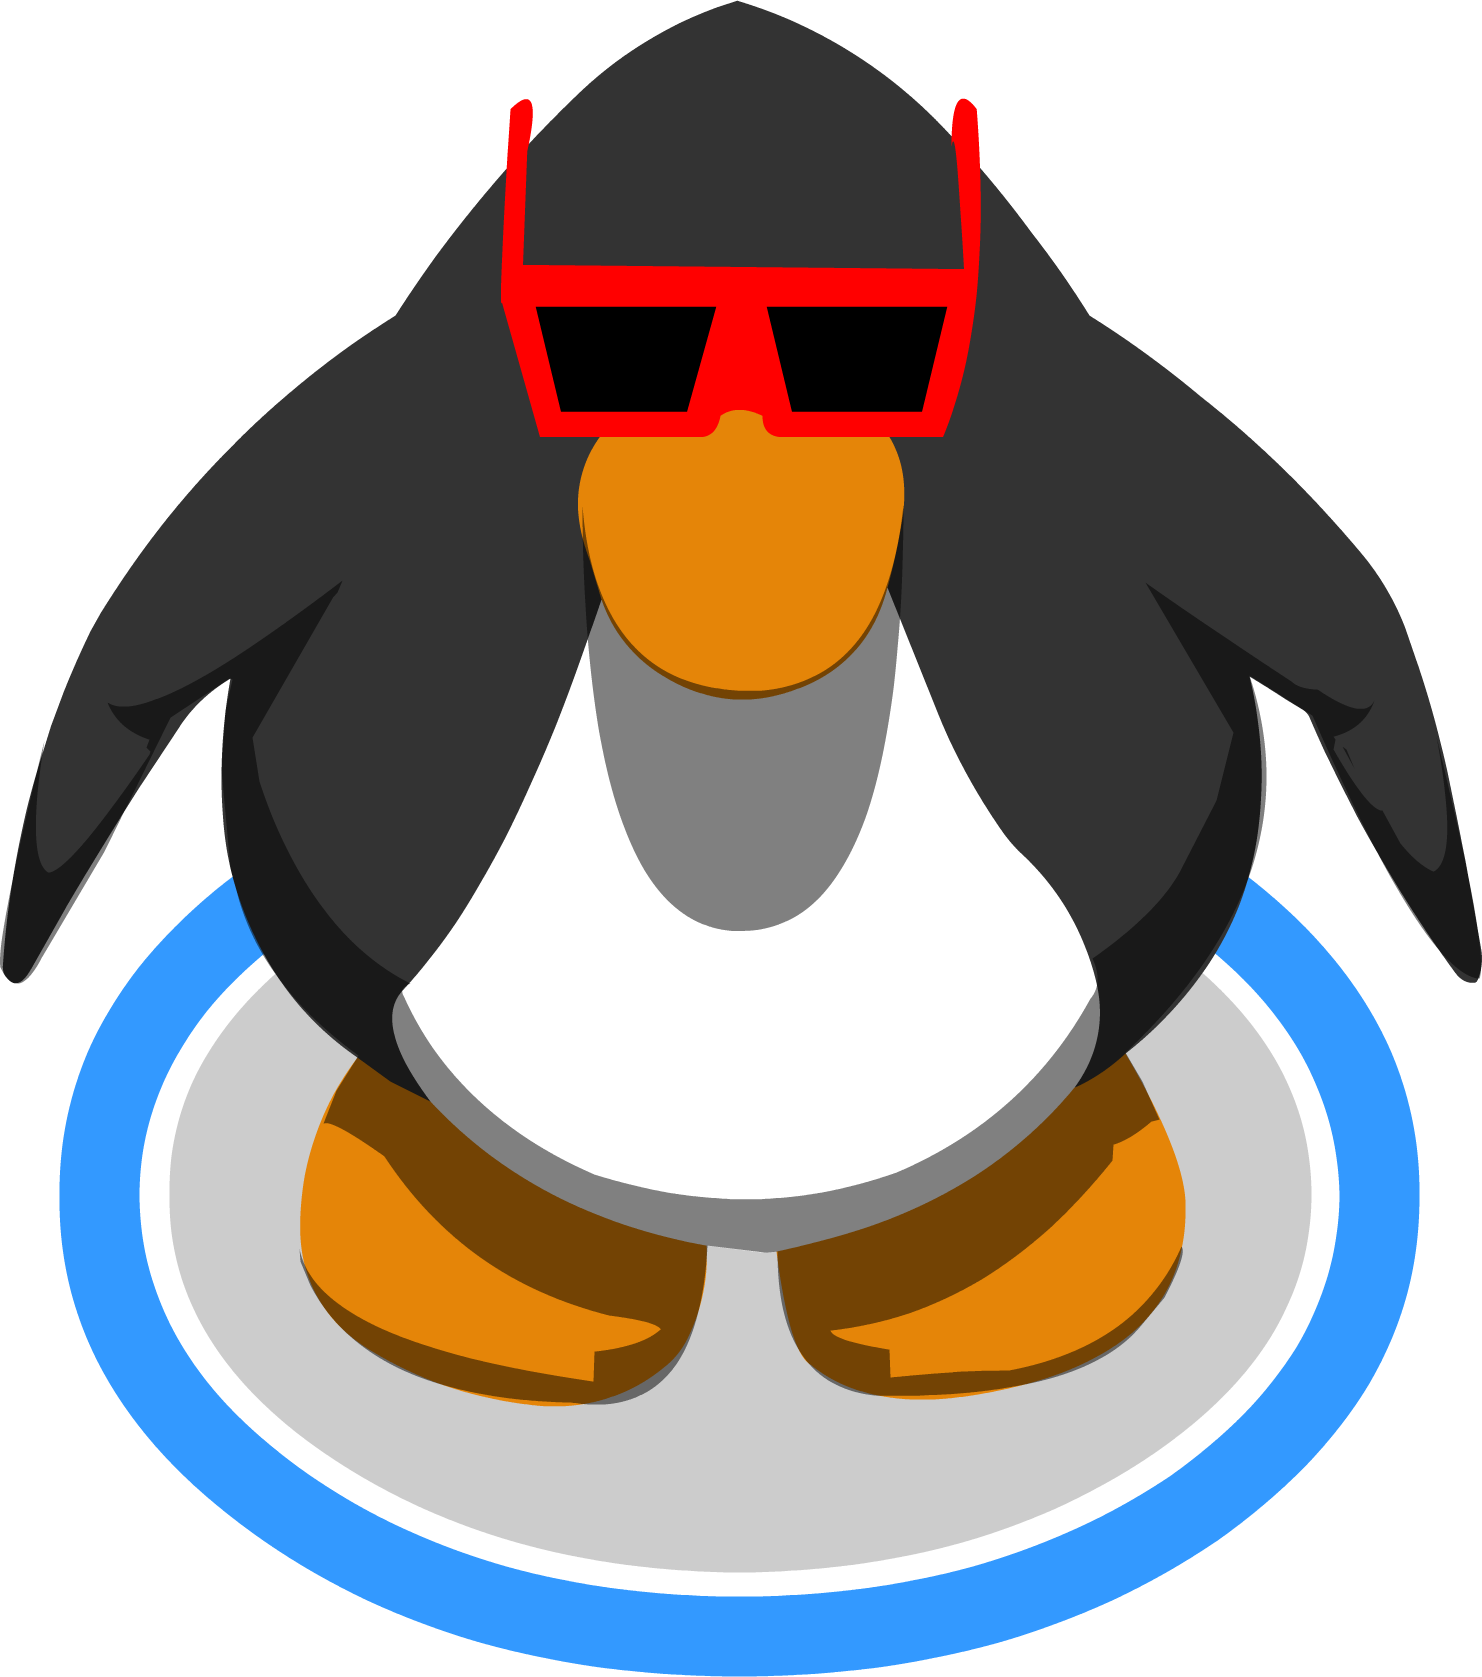 Club penguin penguin png. Image rookies sunglasses ig